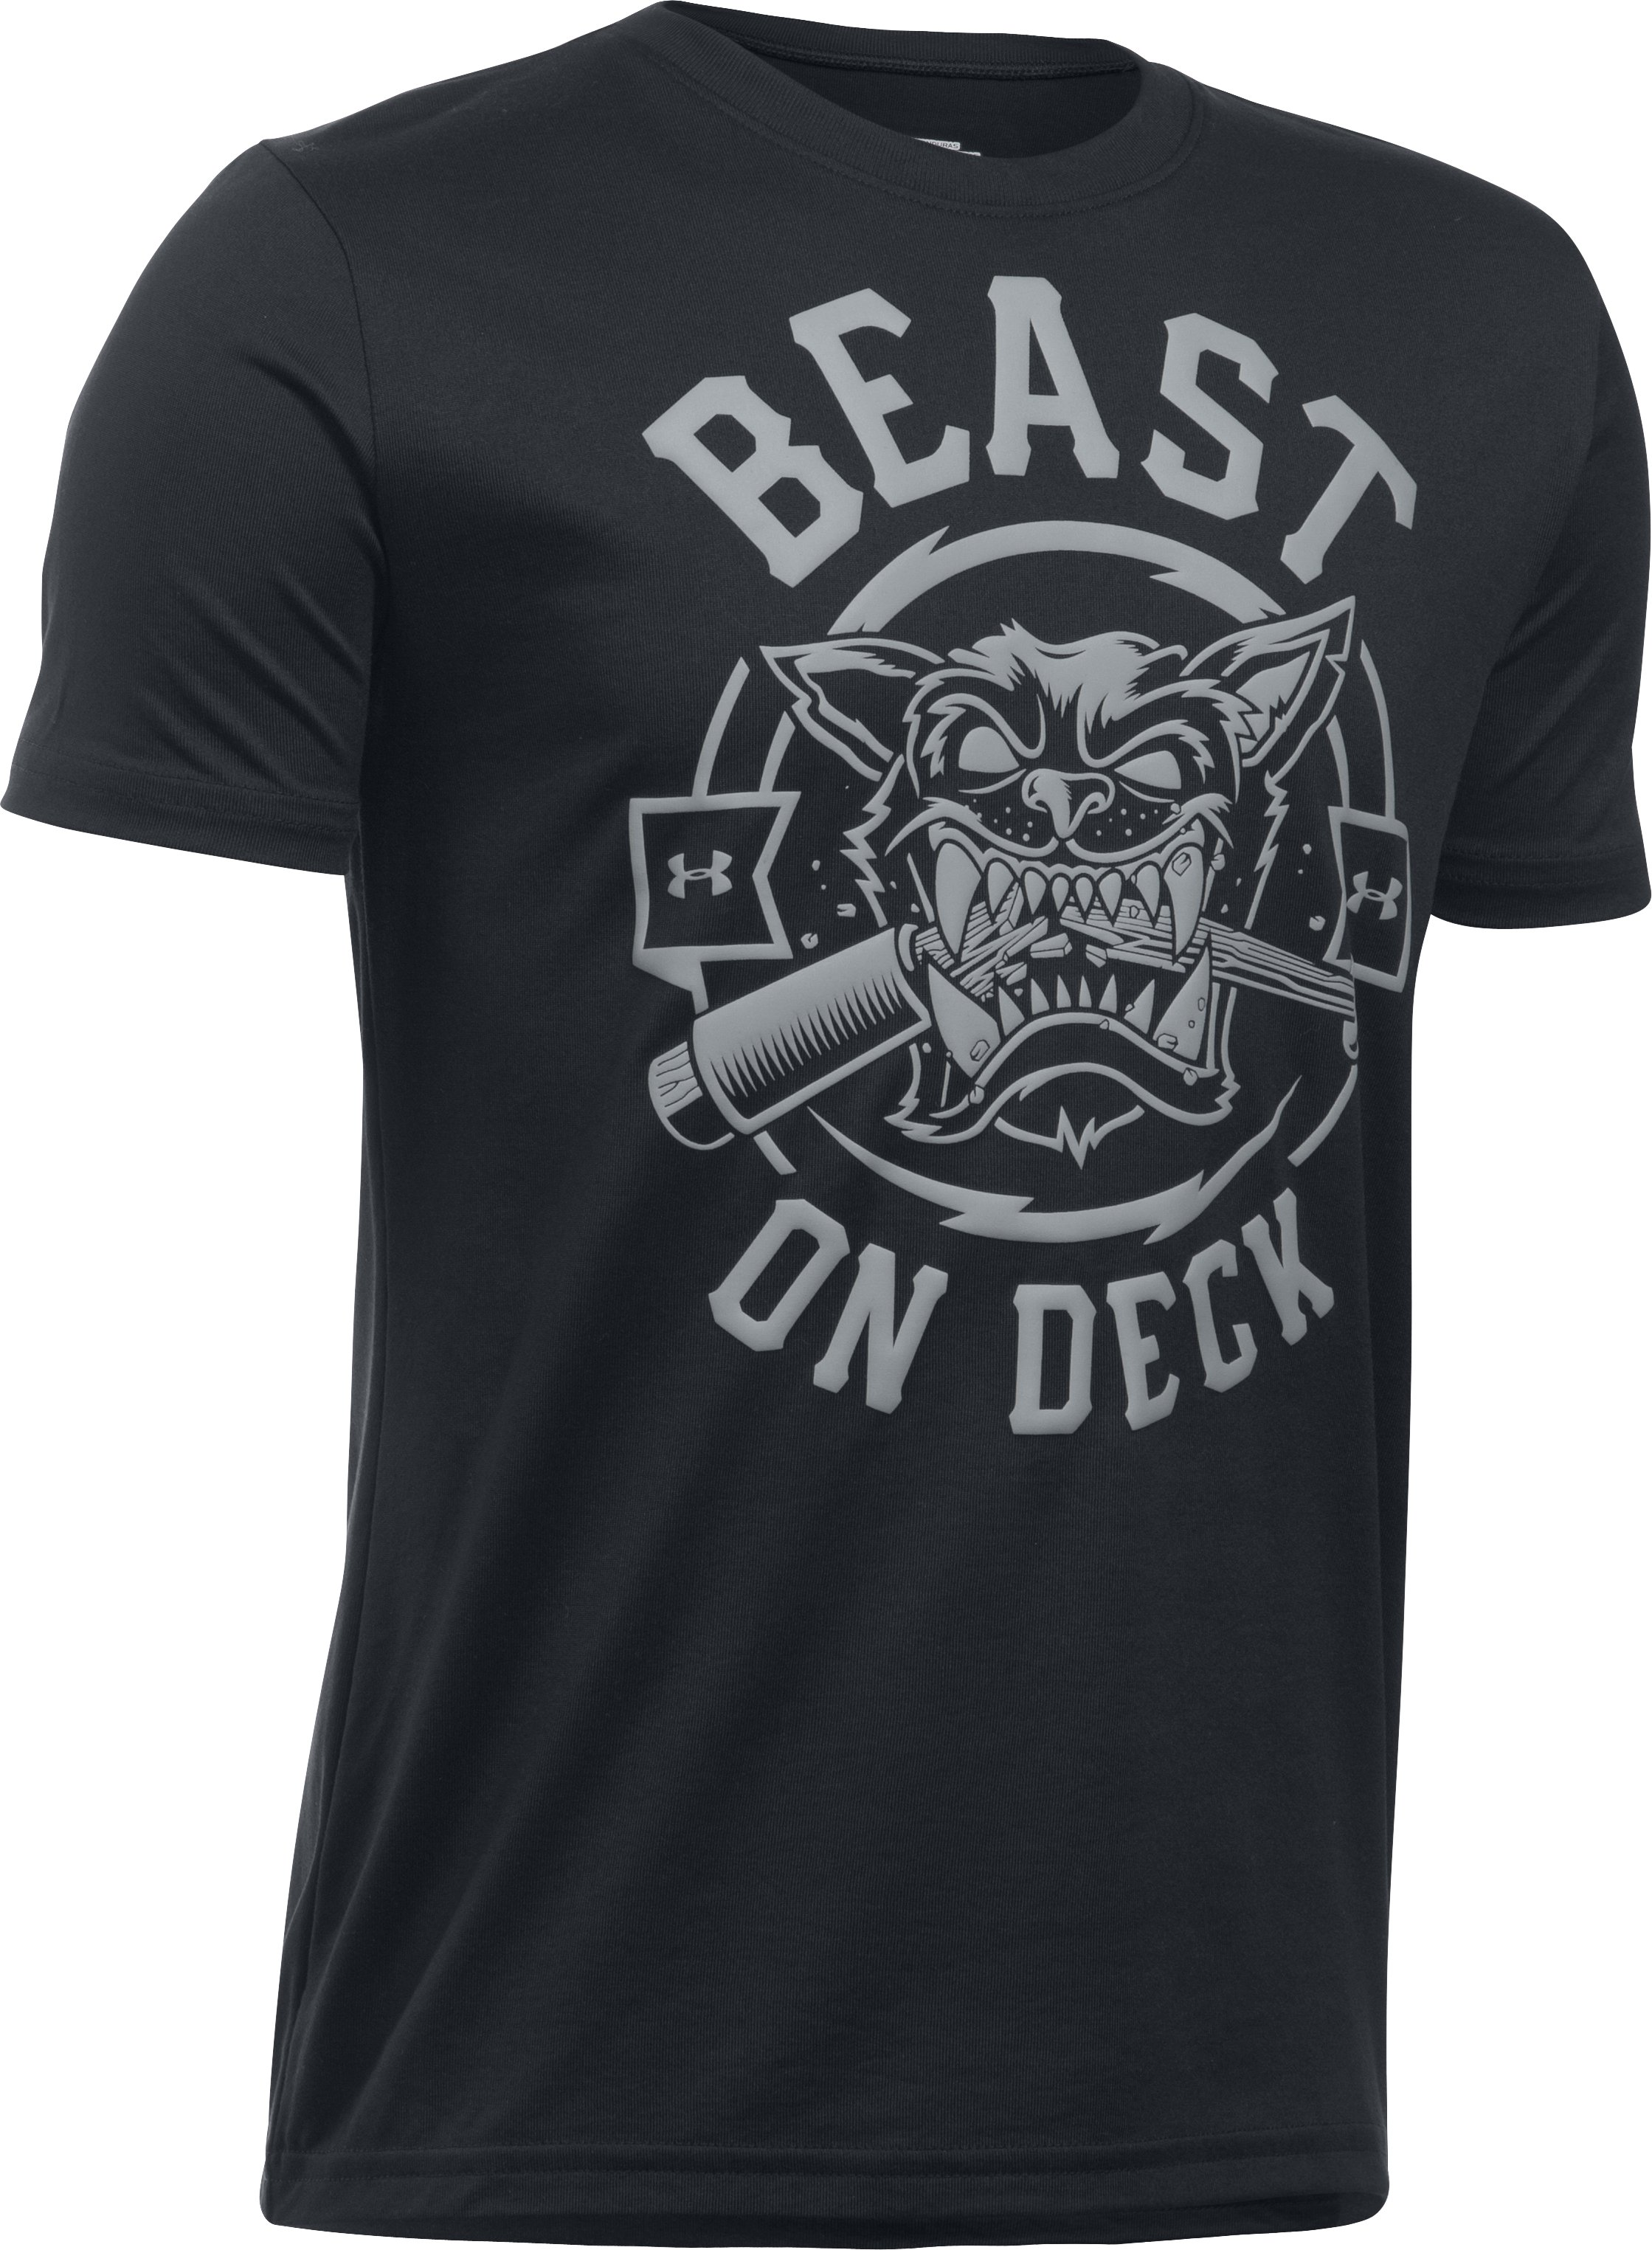 Boys' UA Beast On Deck T-Shirt, Black ,